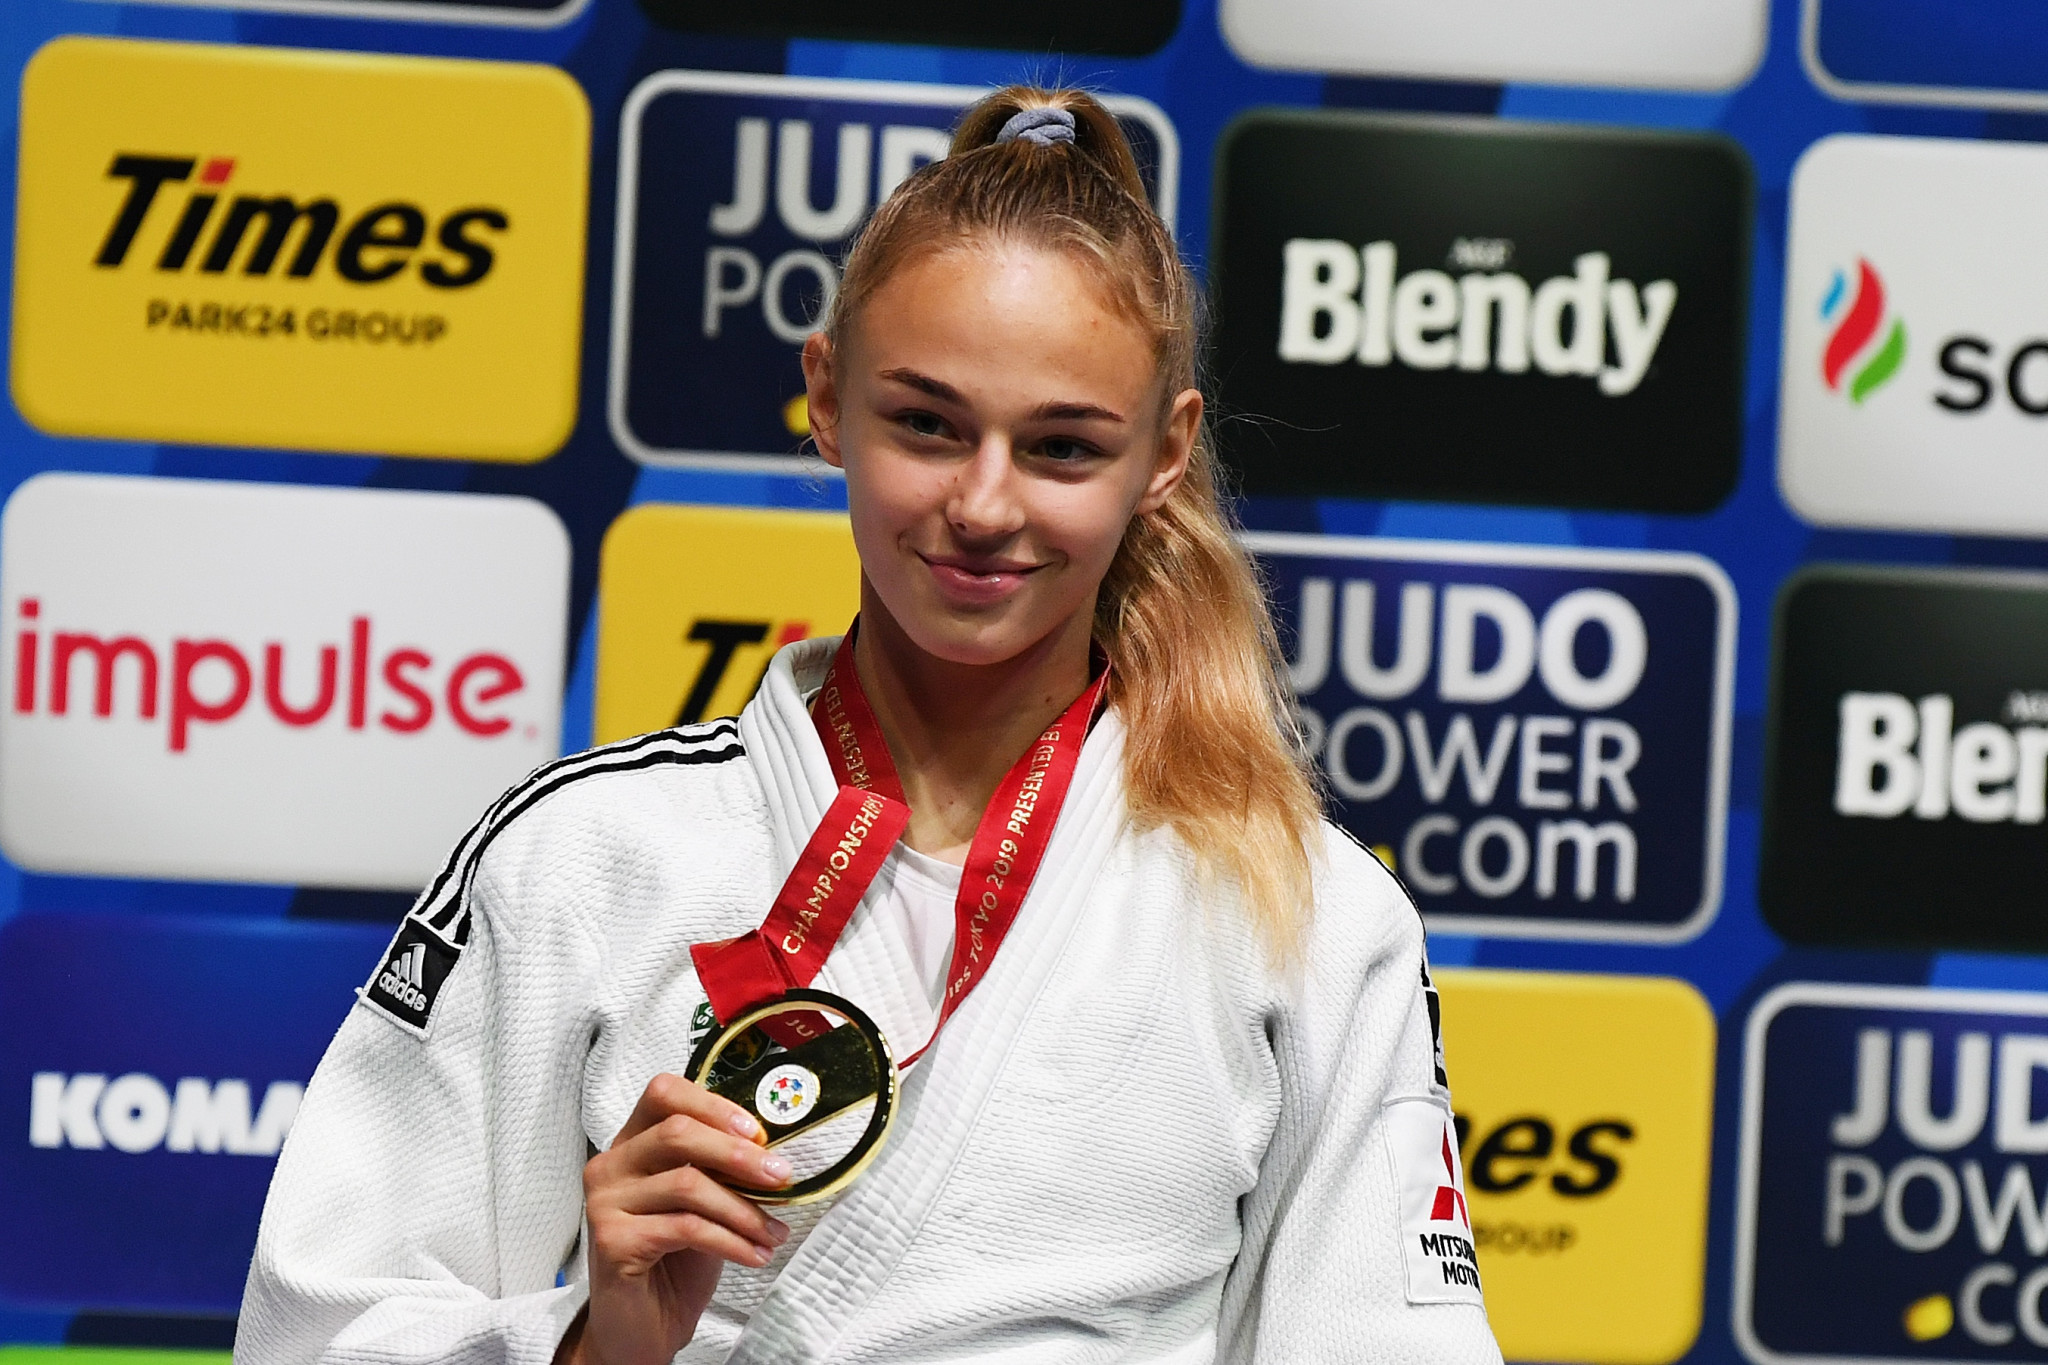 Teenager Bilodid claims second IJF World Championship title as Chkhvimiani adds global crown to European Games gold